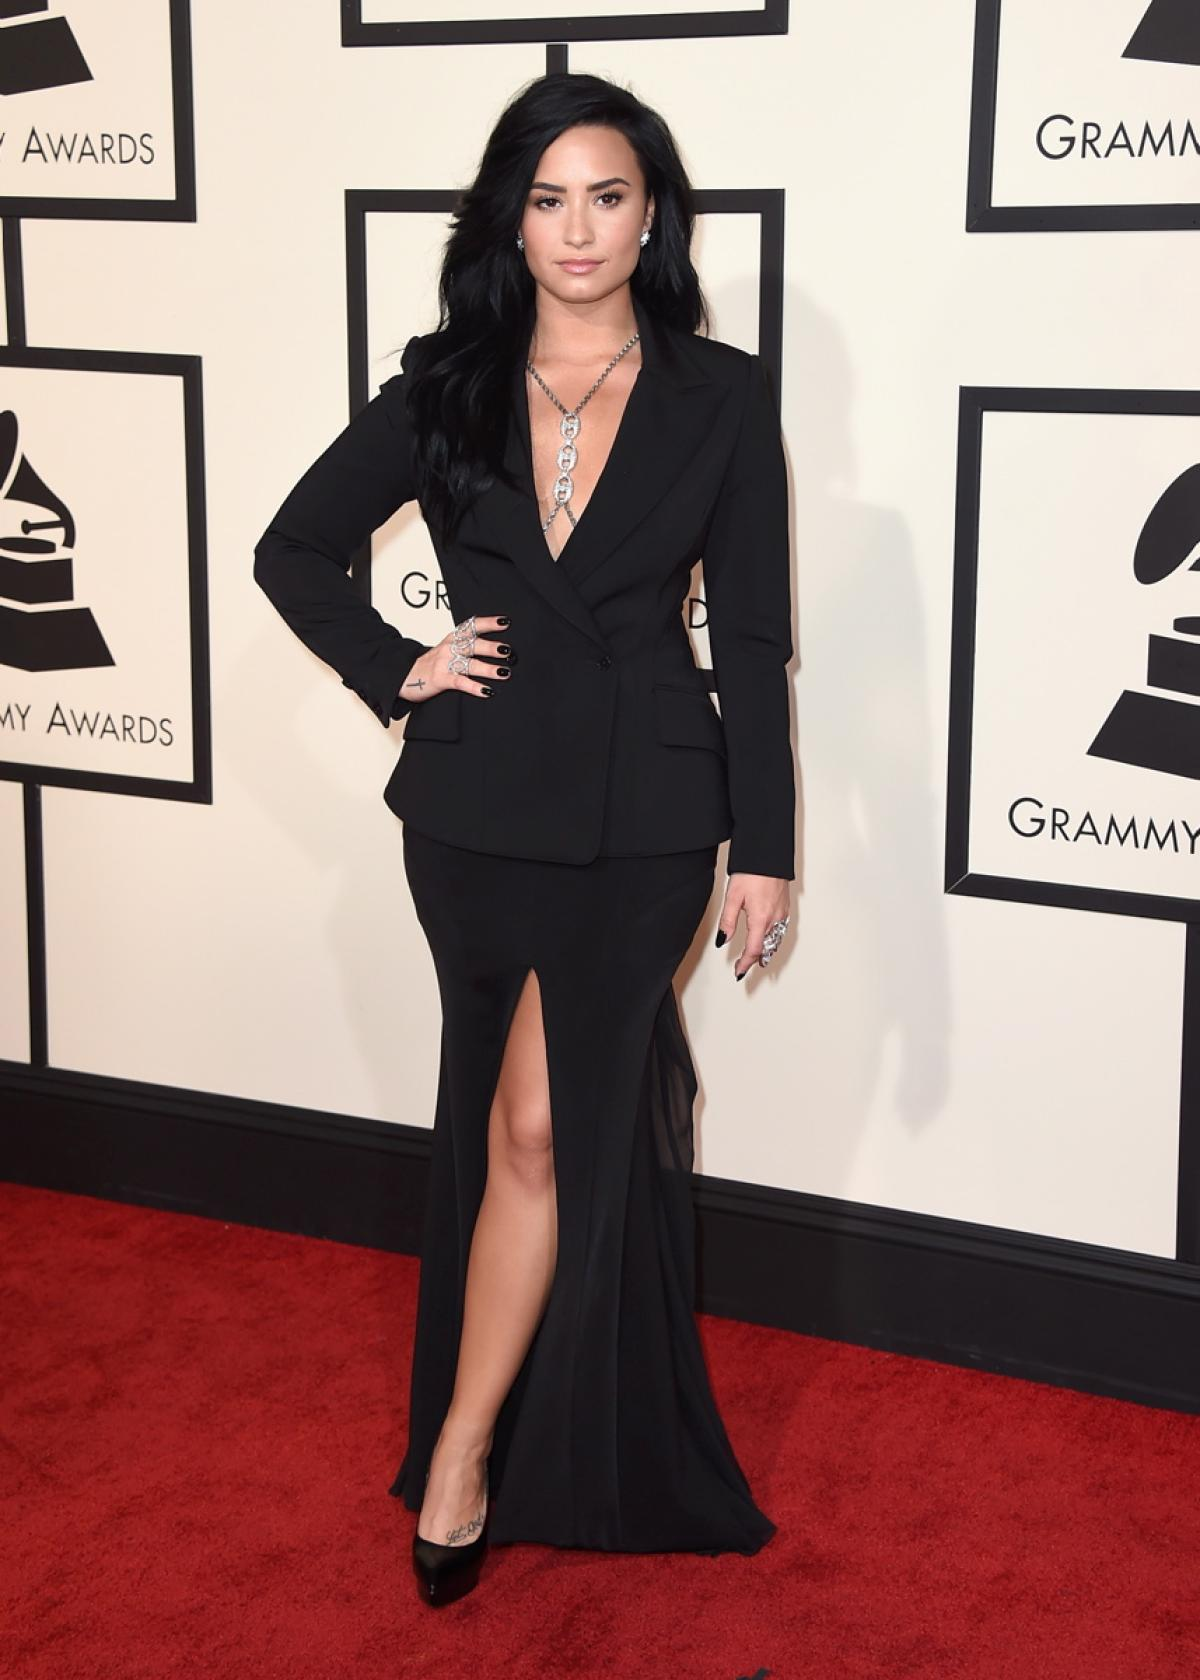 Grammy Awards 2016: My Favorite Top 15 Red Carpet Dresses | HuffPost